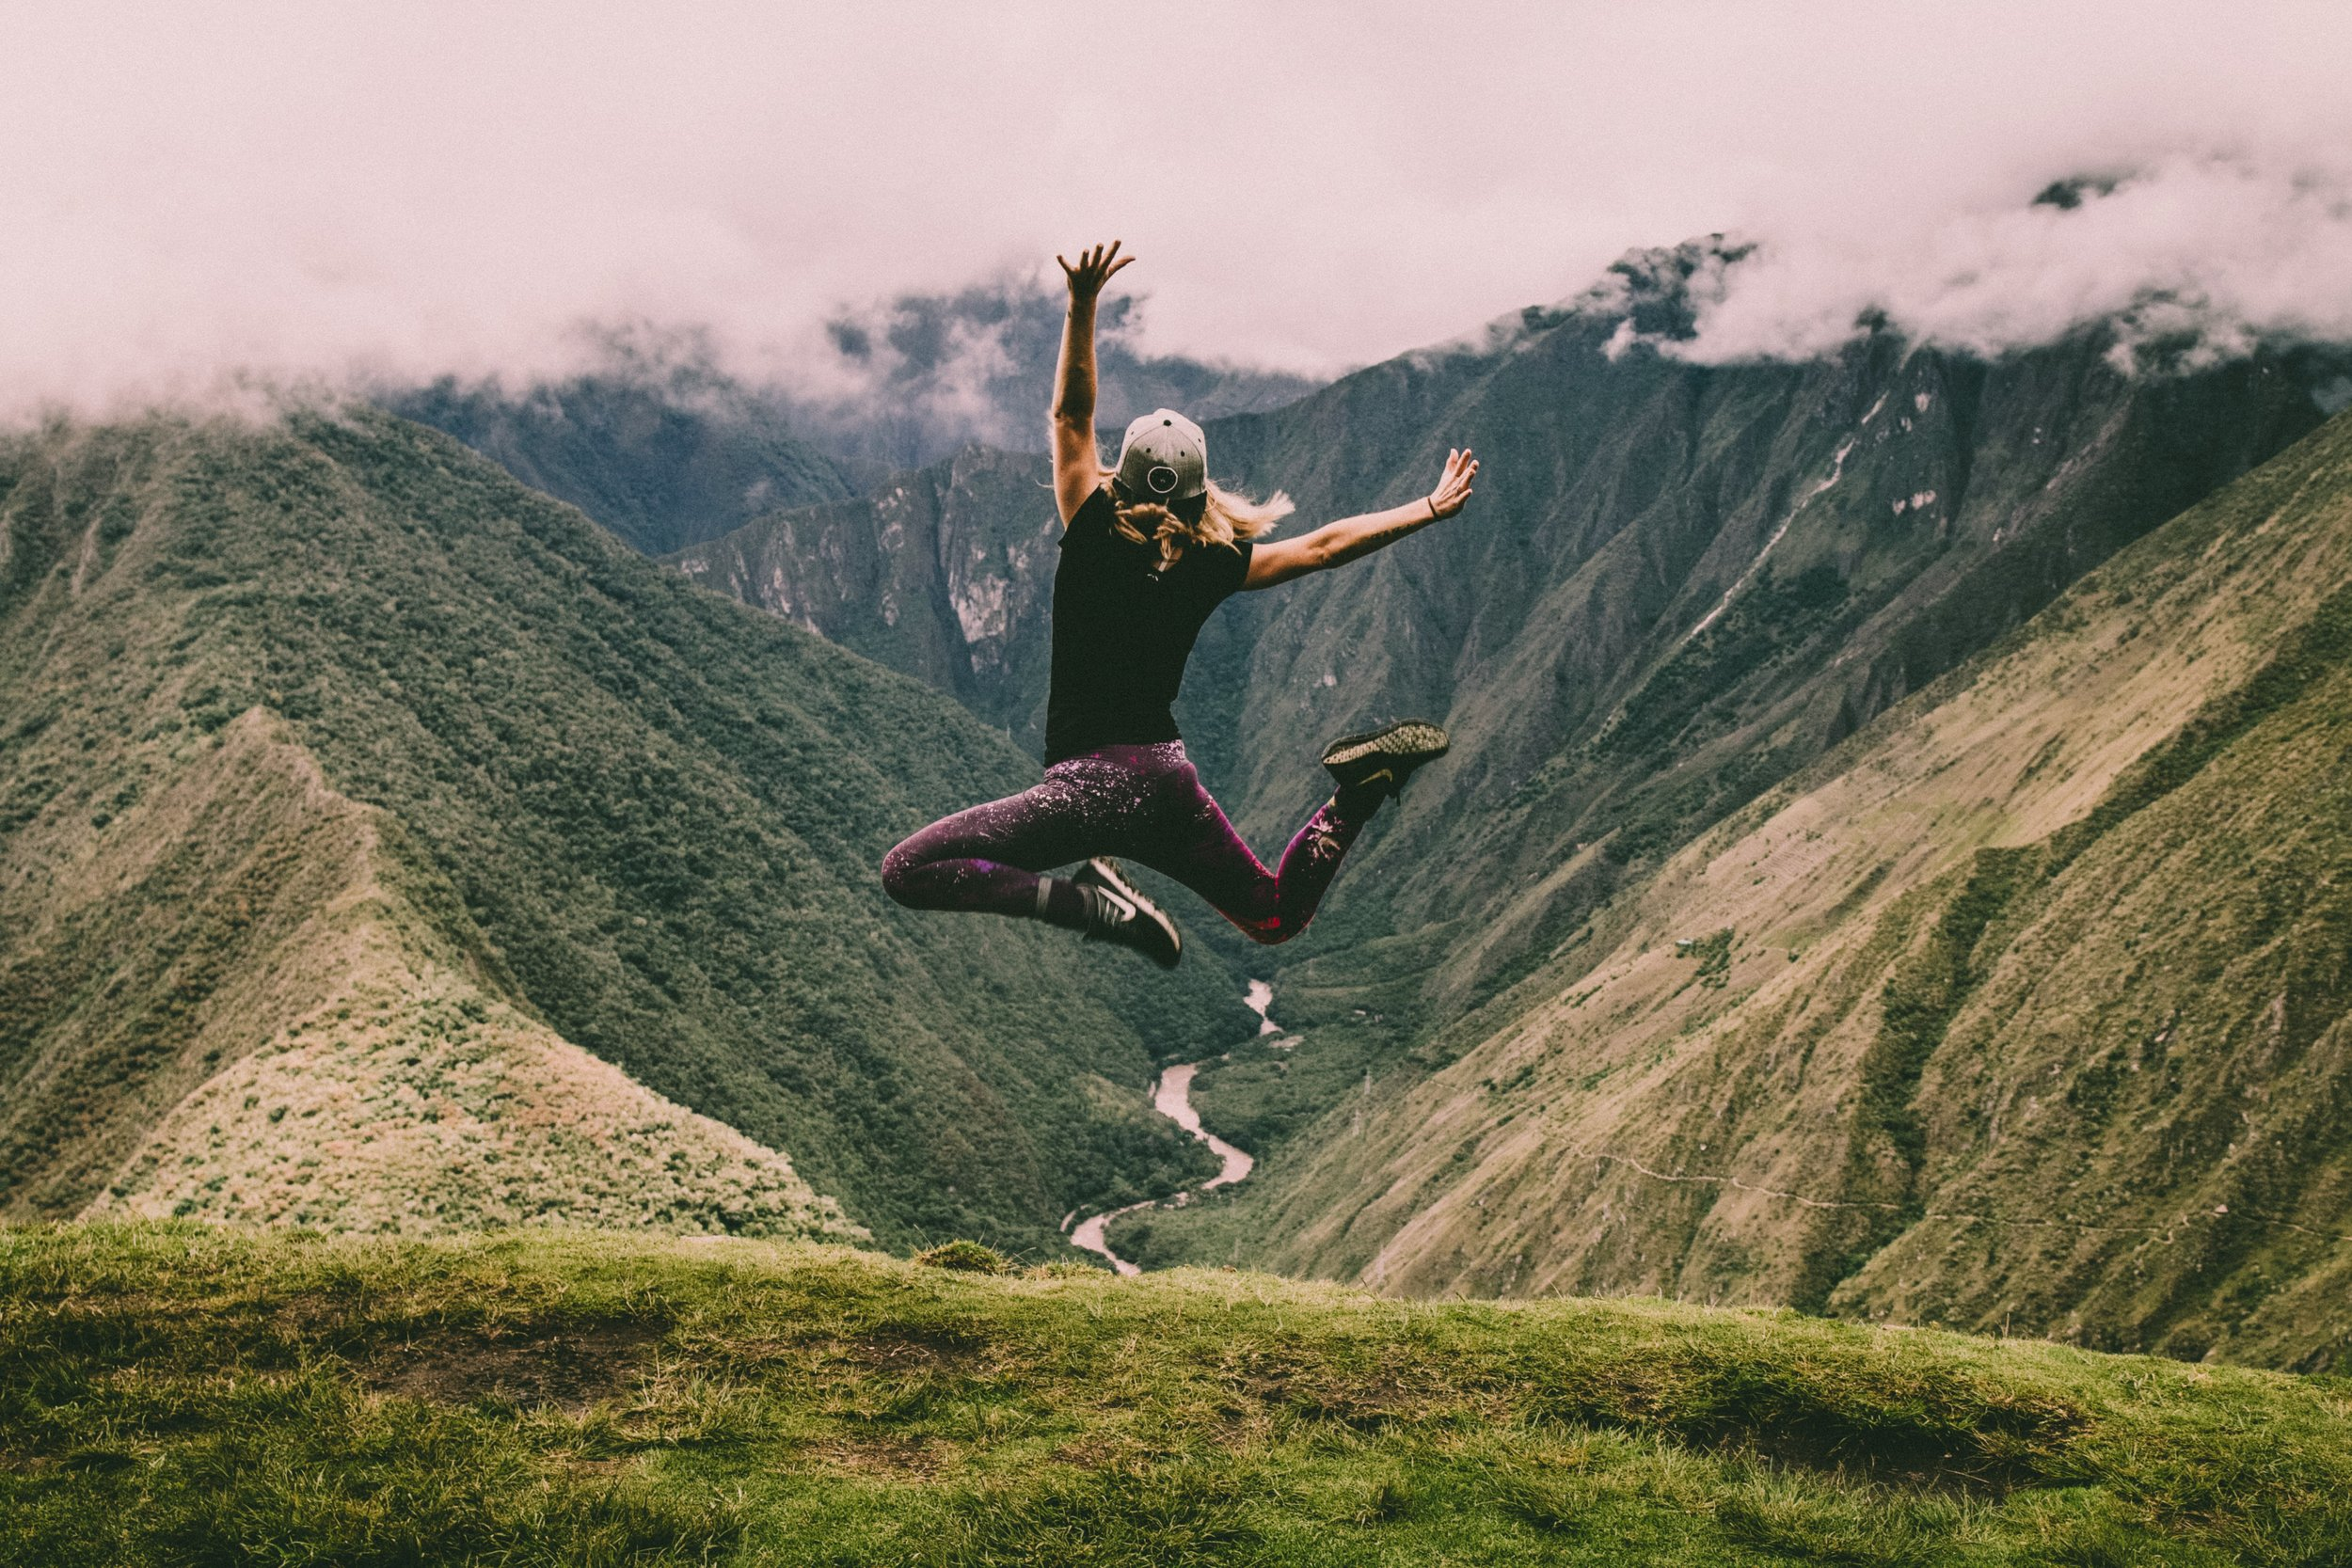 Fitness is freedom! You can do this! - Dr. Wald knows what to do to get you into the best shape of your life. This photo of a woman jumping for joy is real. Maybe you can't jump as high, but you can learn to jump and love life.